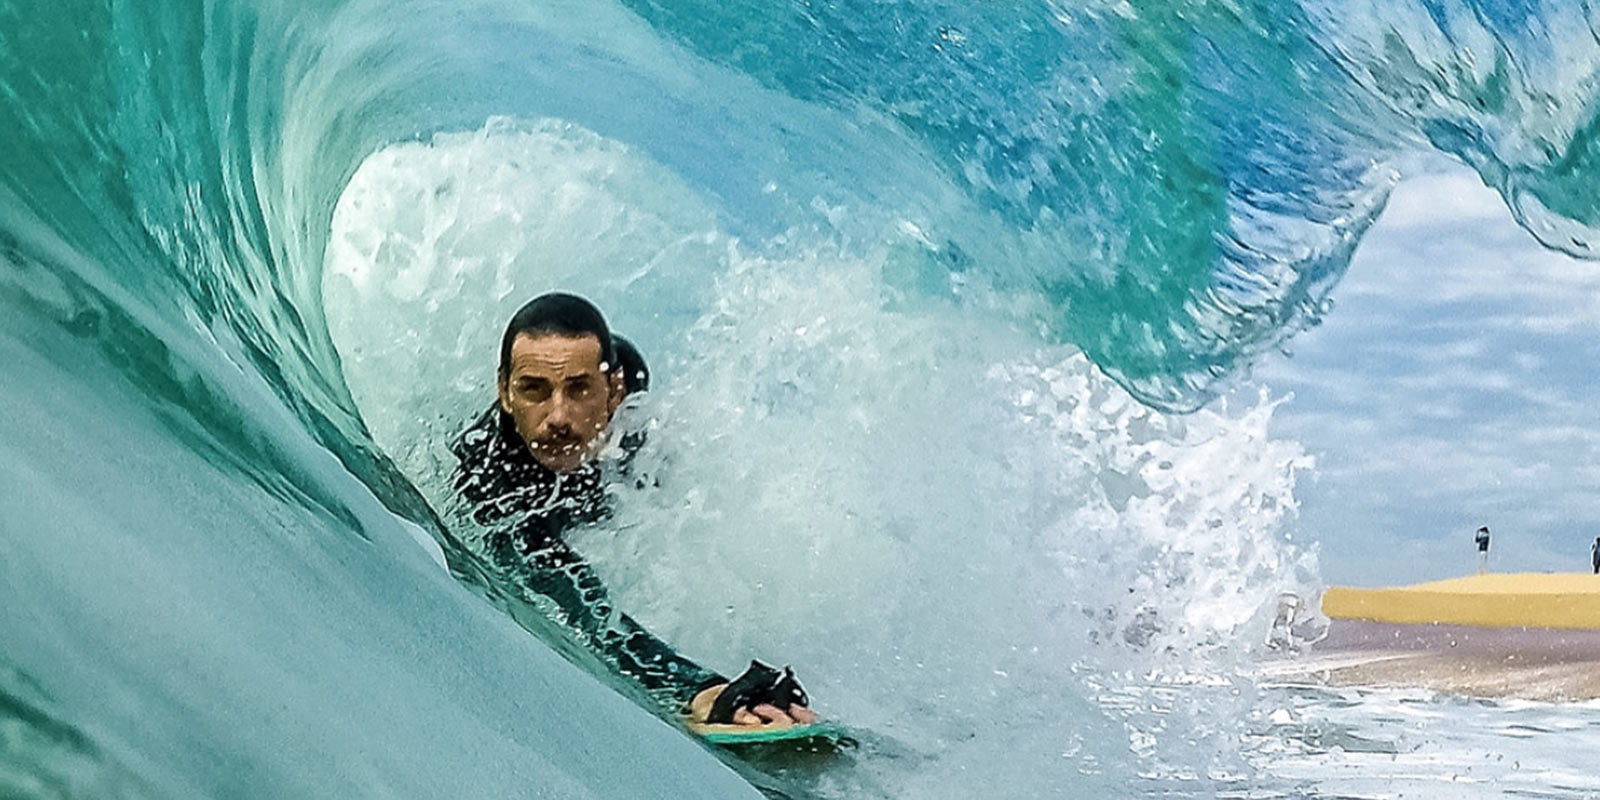 Bodysurfing Community: Vincent Anthony Amendola & The Cheeeheeyewww Heard Around The World